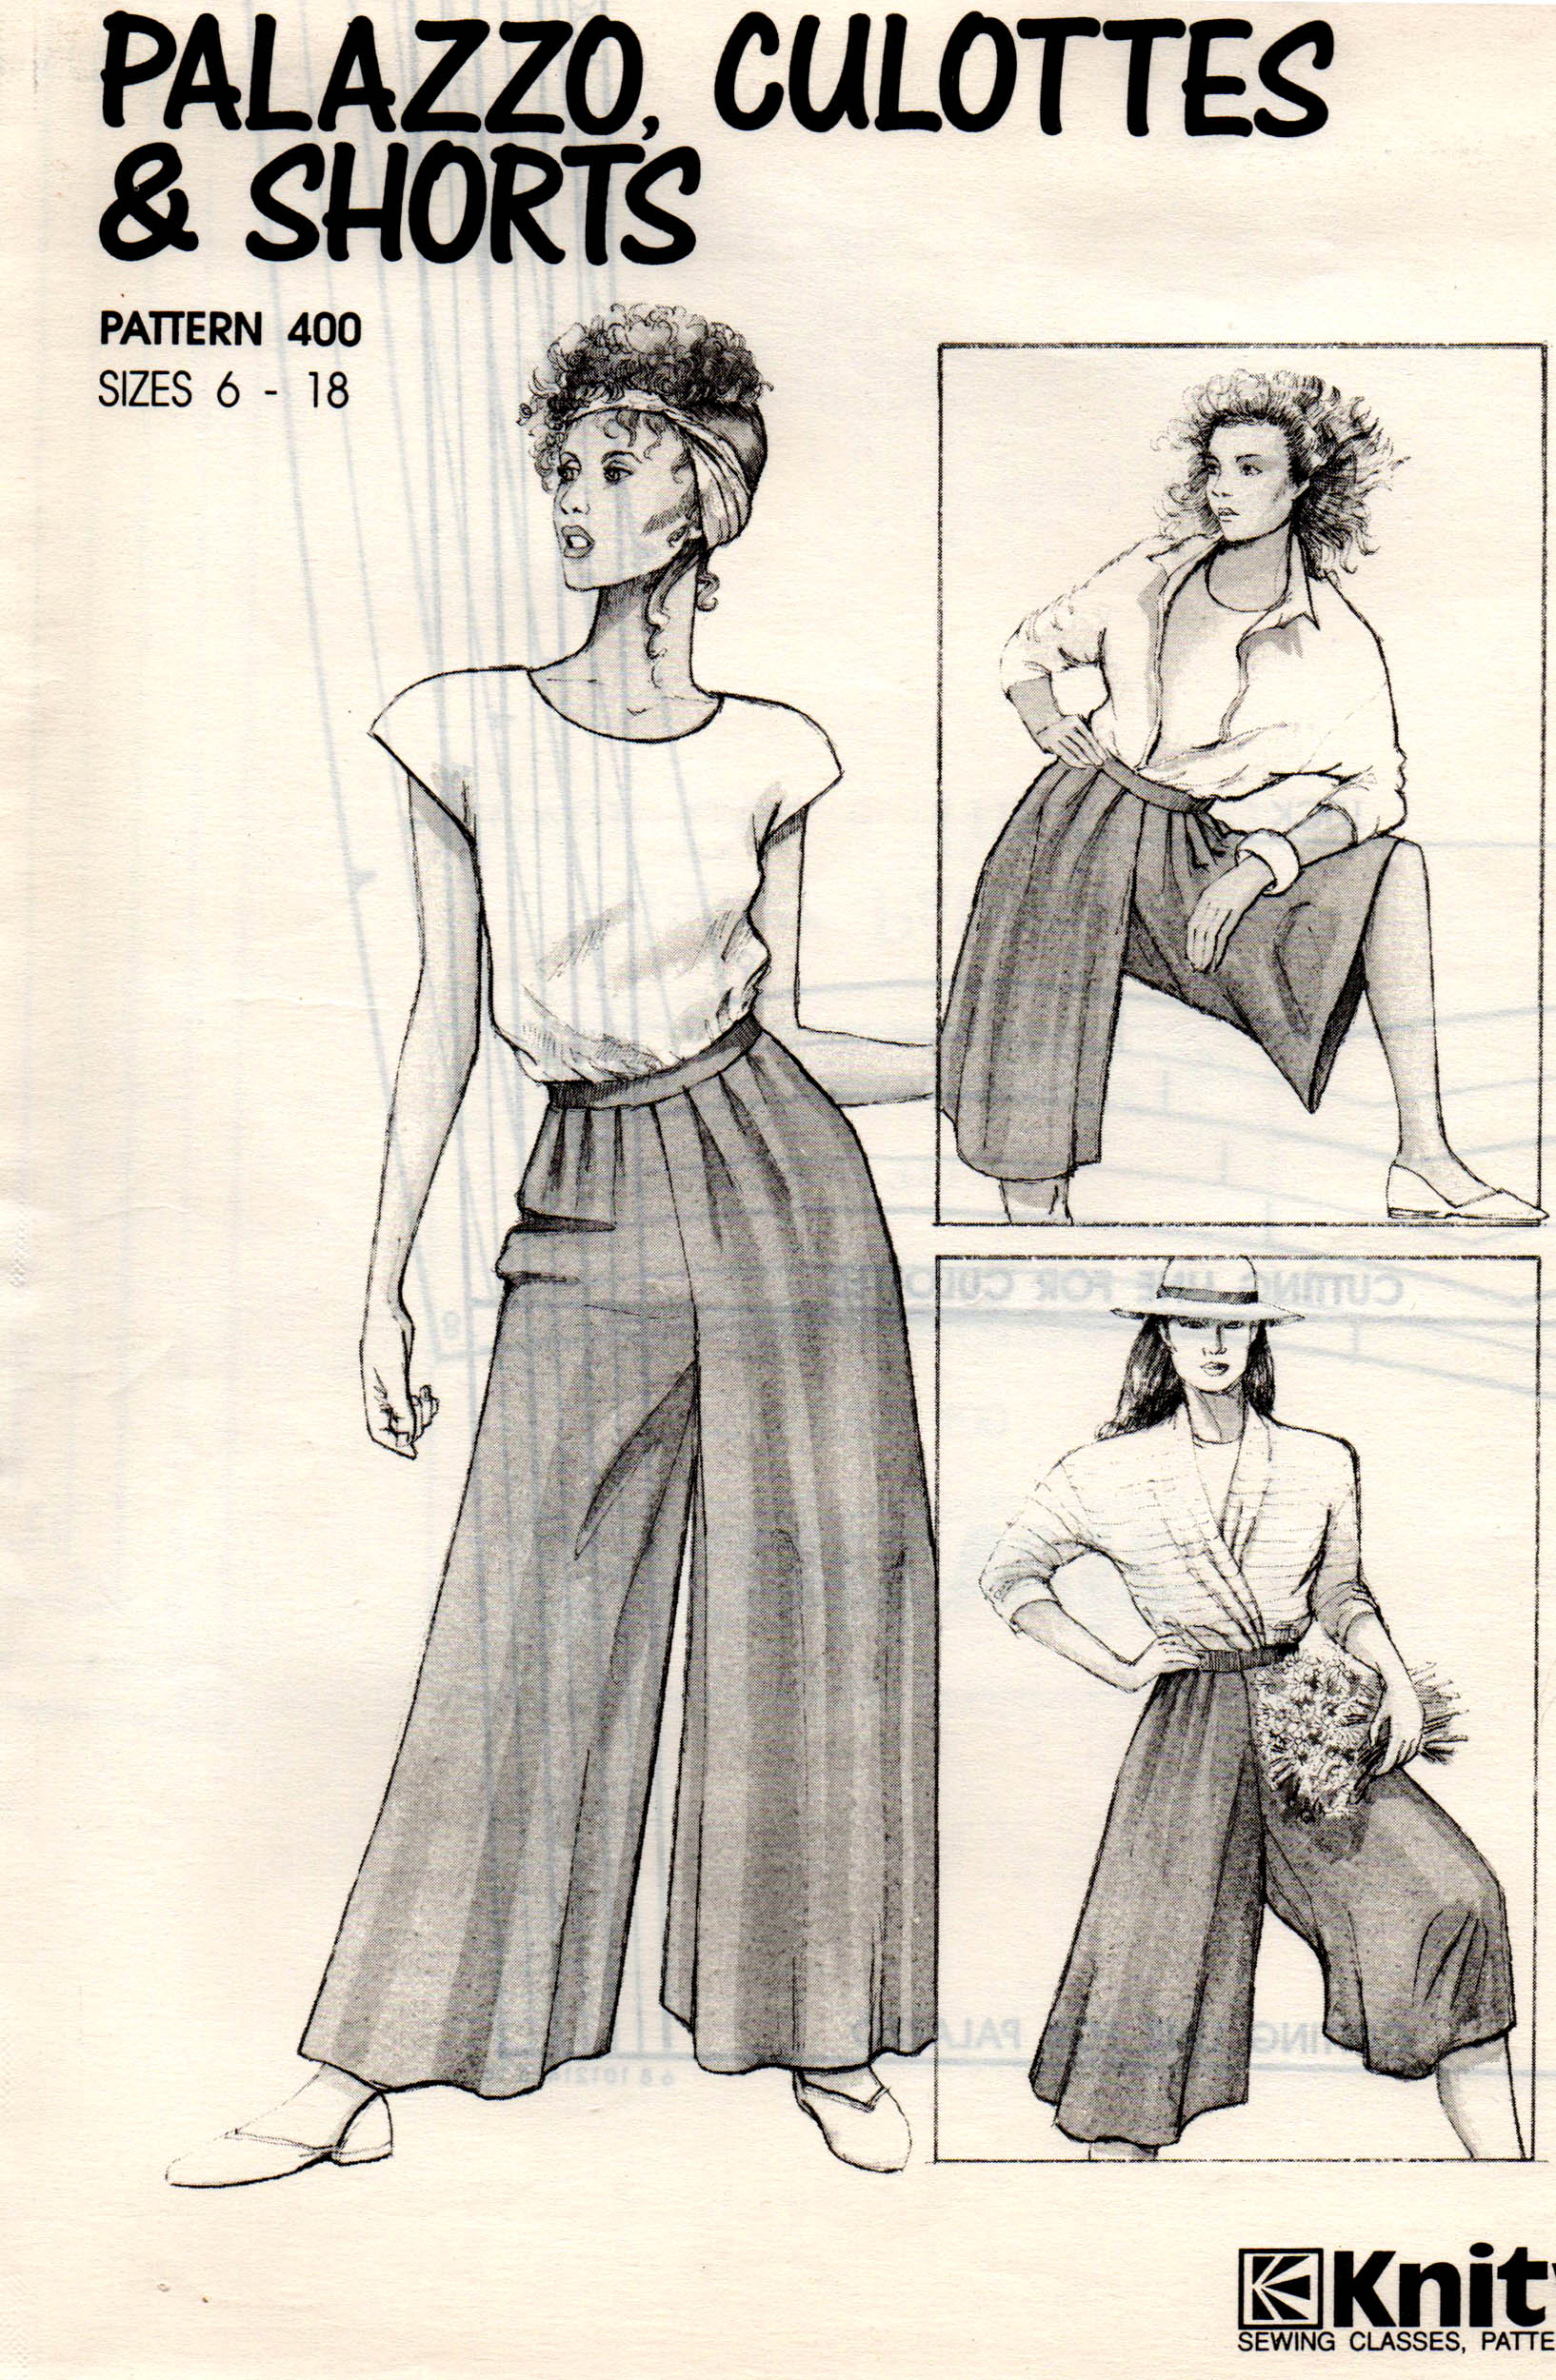 Knitwit 400 vintage sewing patterns fandom powered by wikia knitwit 400 ca 1980s palazzo culottes shorts pattern features wide legged palazzo pant culottes and wide legged shorts bankloansurffo Images